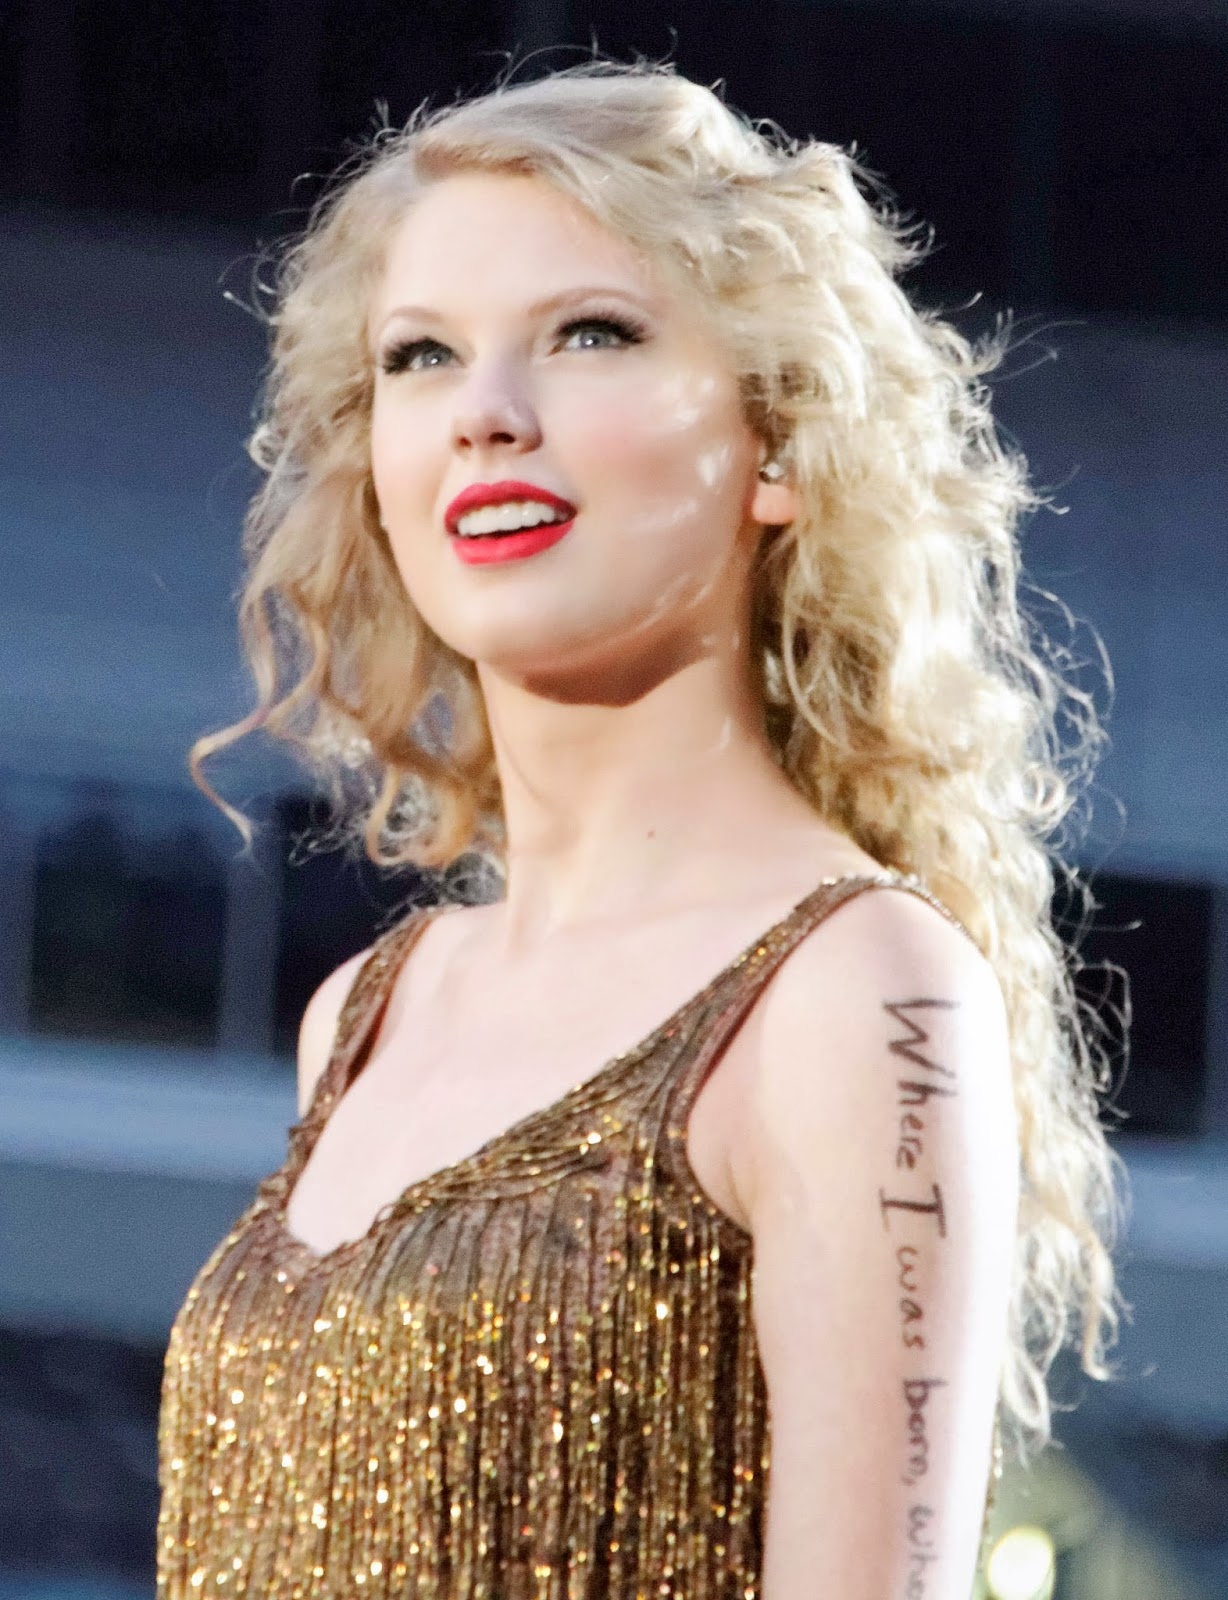 Taylor Swift Inspired Makeup Tutorial: Taylor Swift Profile And Latest Photos 2013-14